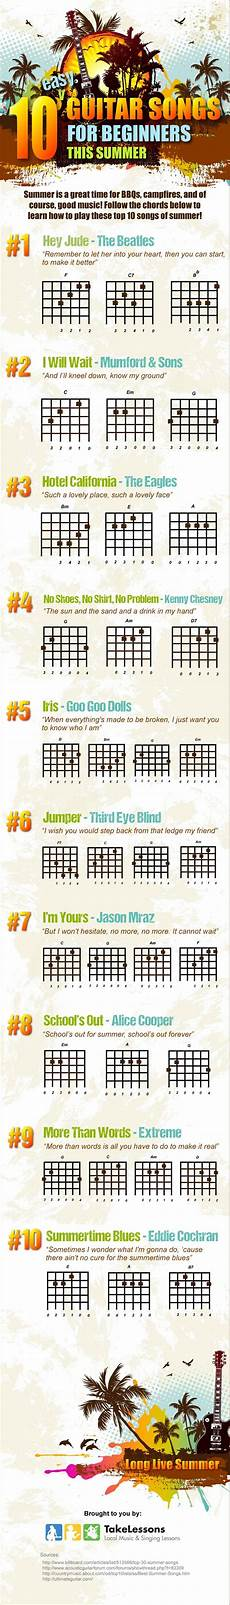 how to play guitar songs for beginners 10 easy guitar songs for beginners this summer must do asap easy